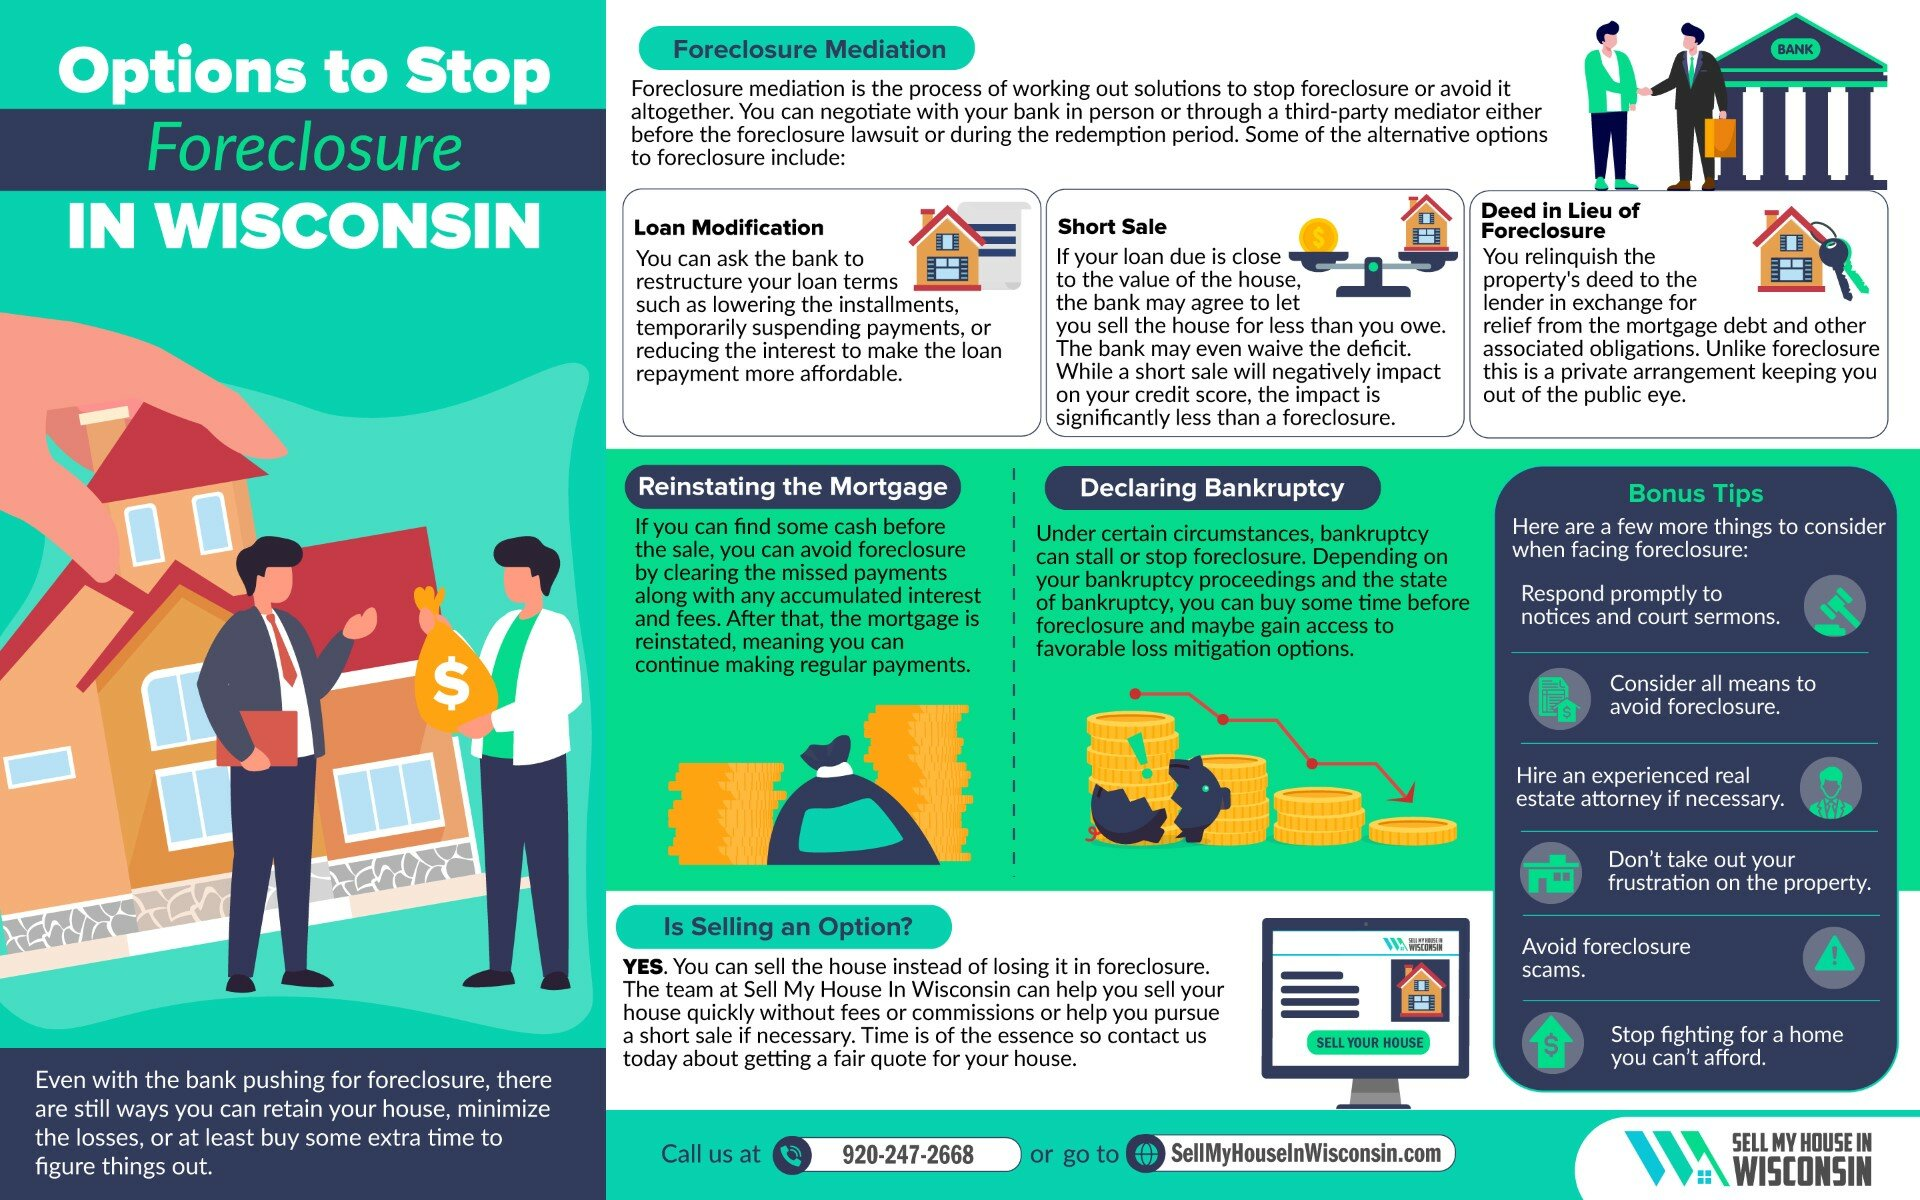 Options to stop foreclosure in Wisconsin